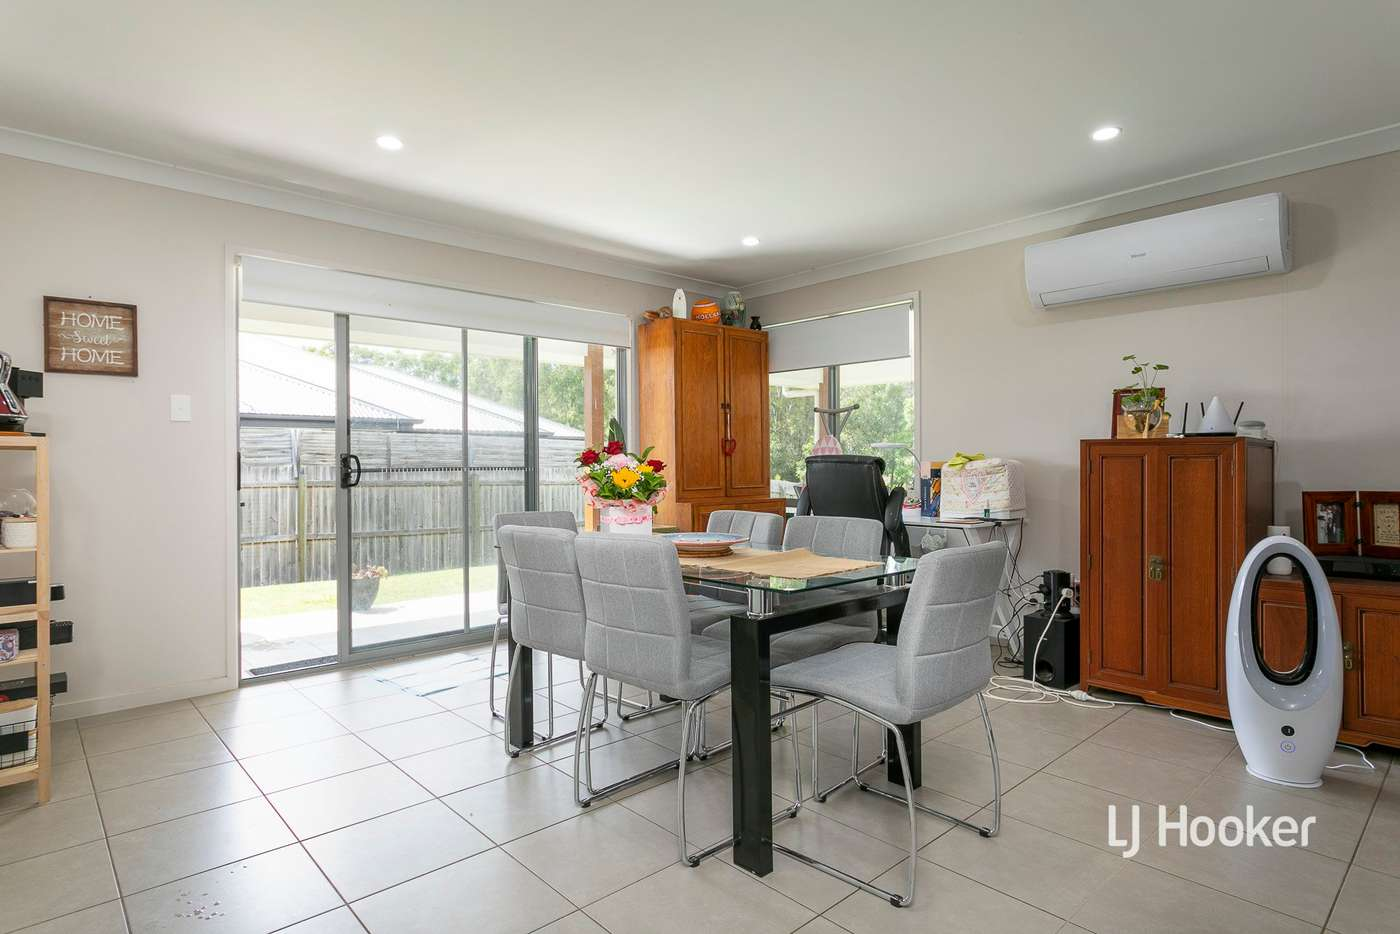 Seventh view of Homely house listing, 25 Park Edge Place, Redland Bay QLD 4165